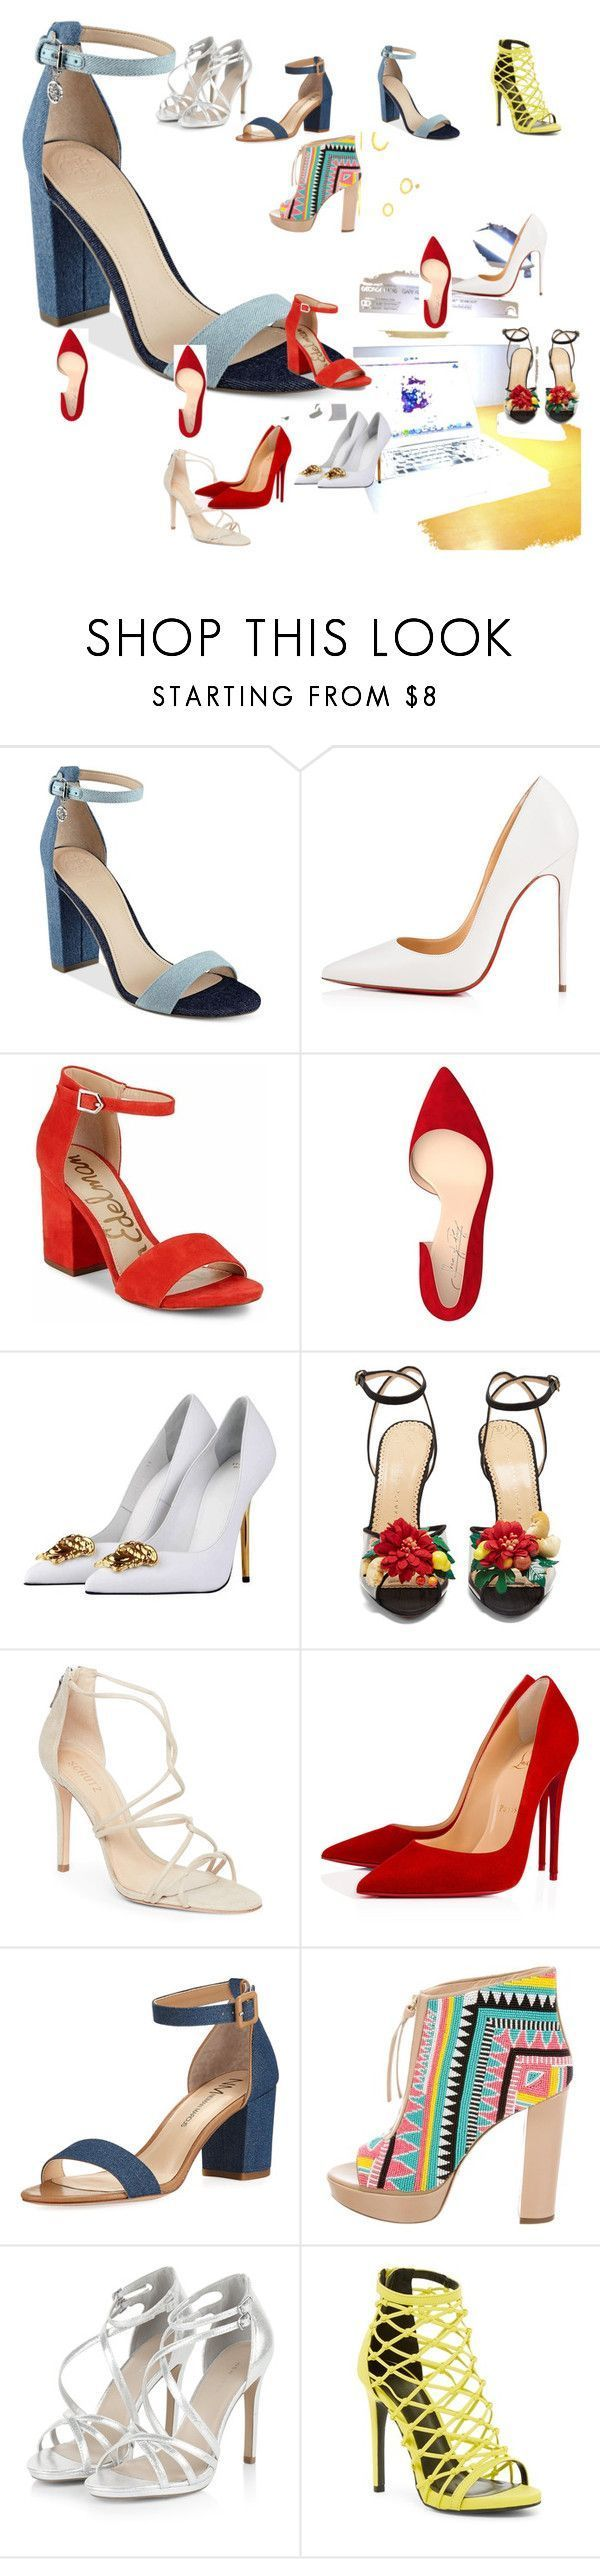 """""""BEST HEELS EVER BACK TO SCHOOL HAUL"""" by backtoschoolbacktoschoolback on Polyvore featuring GUESS, Christian Louboutin, Sam Edelman, Shoes of Prey, Versace, Charlotte Olympia, Schutz, Neiman Marcus, Jerome C. Rousseau and Wild Diva #charlotteolympiaheelsneimanmarcus #charlotteolympiaheelschristianlouboutin"""